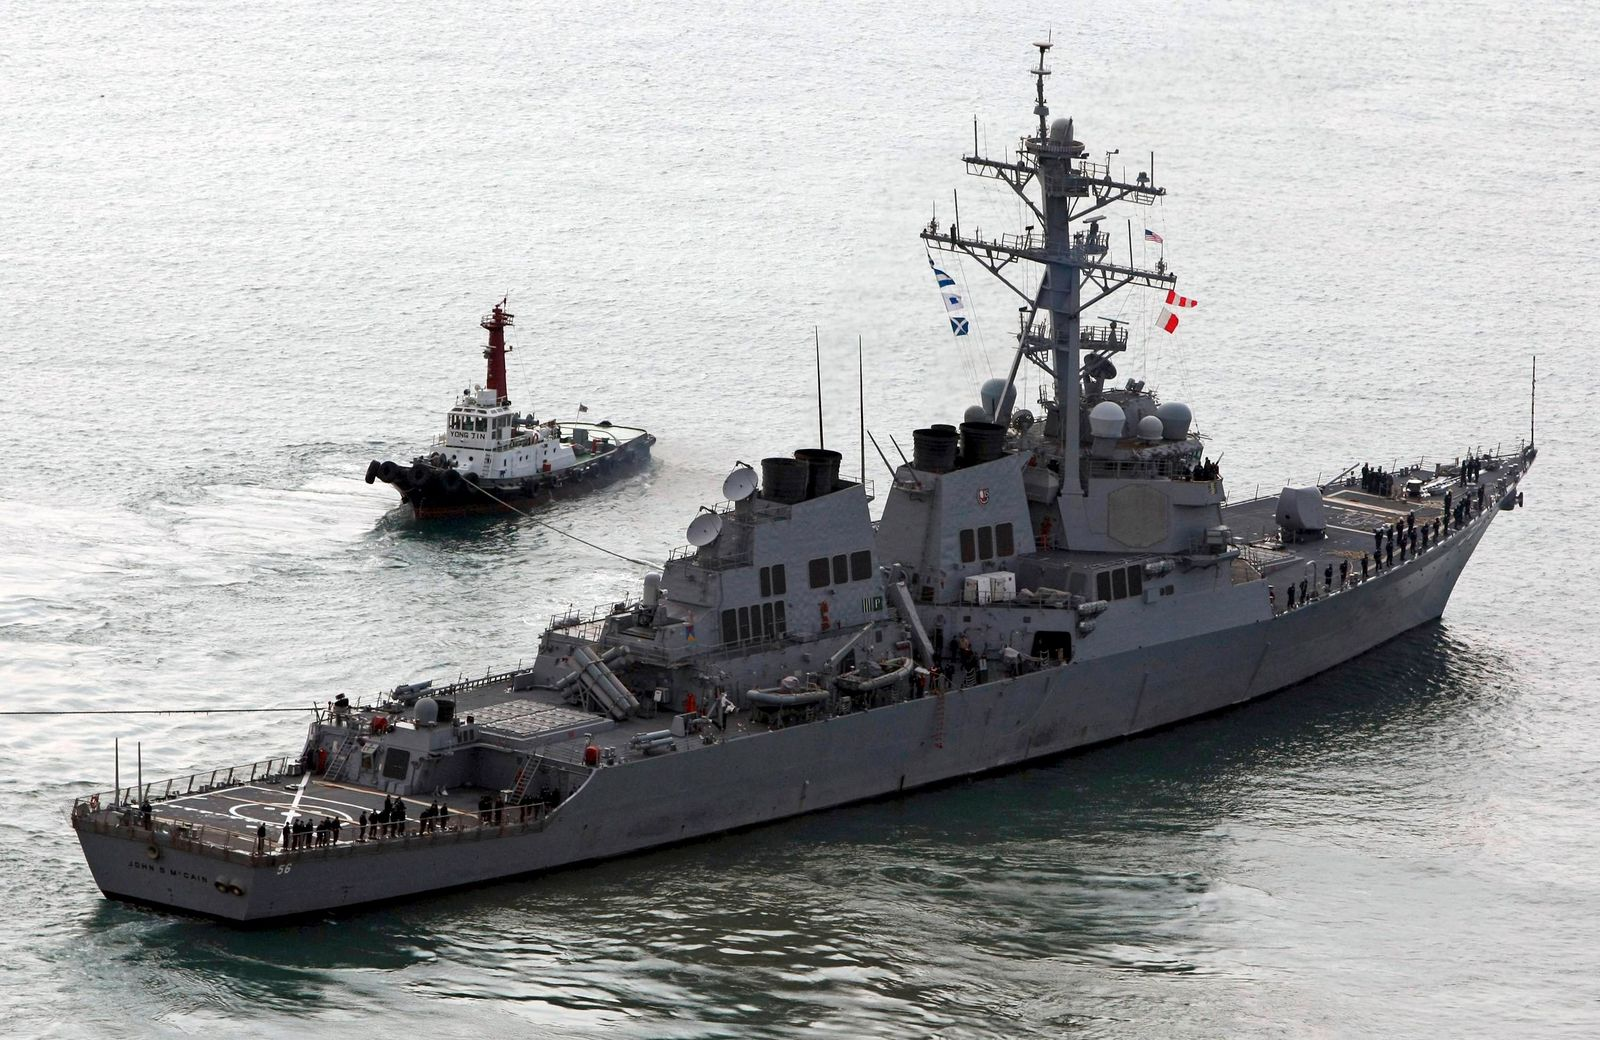 U.S. Navy's guided-missile destroyer USS John S. McCain sails off a naval port in Busan